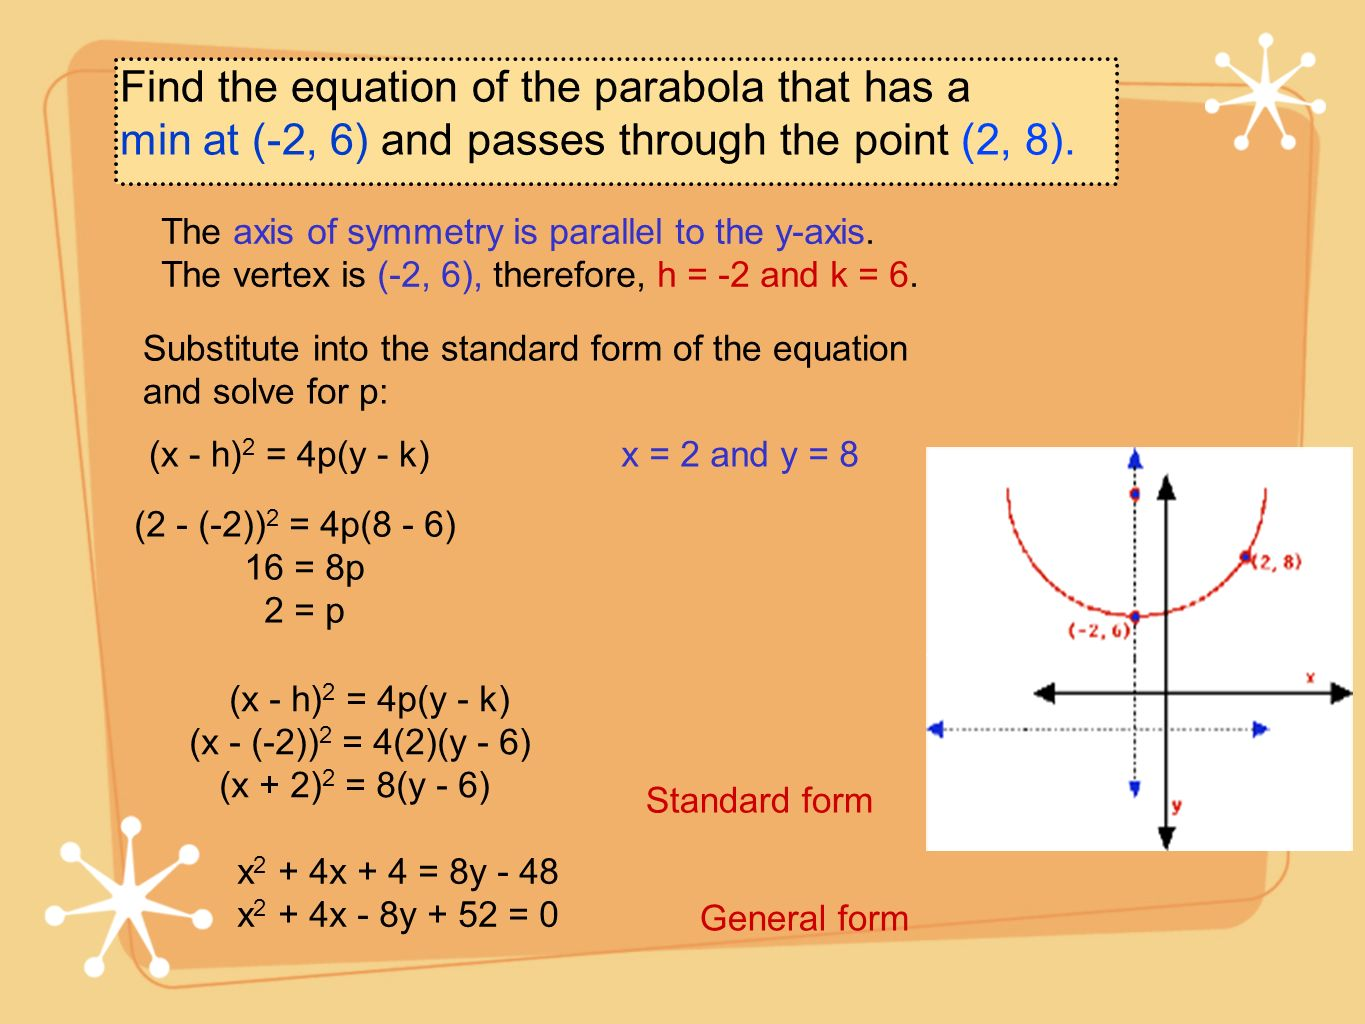 Find the equation of the parabola that has a min at (-2, 6) and passes through the point (2, 8). The axis of symmetry is parallel to the y-axis. The v